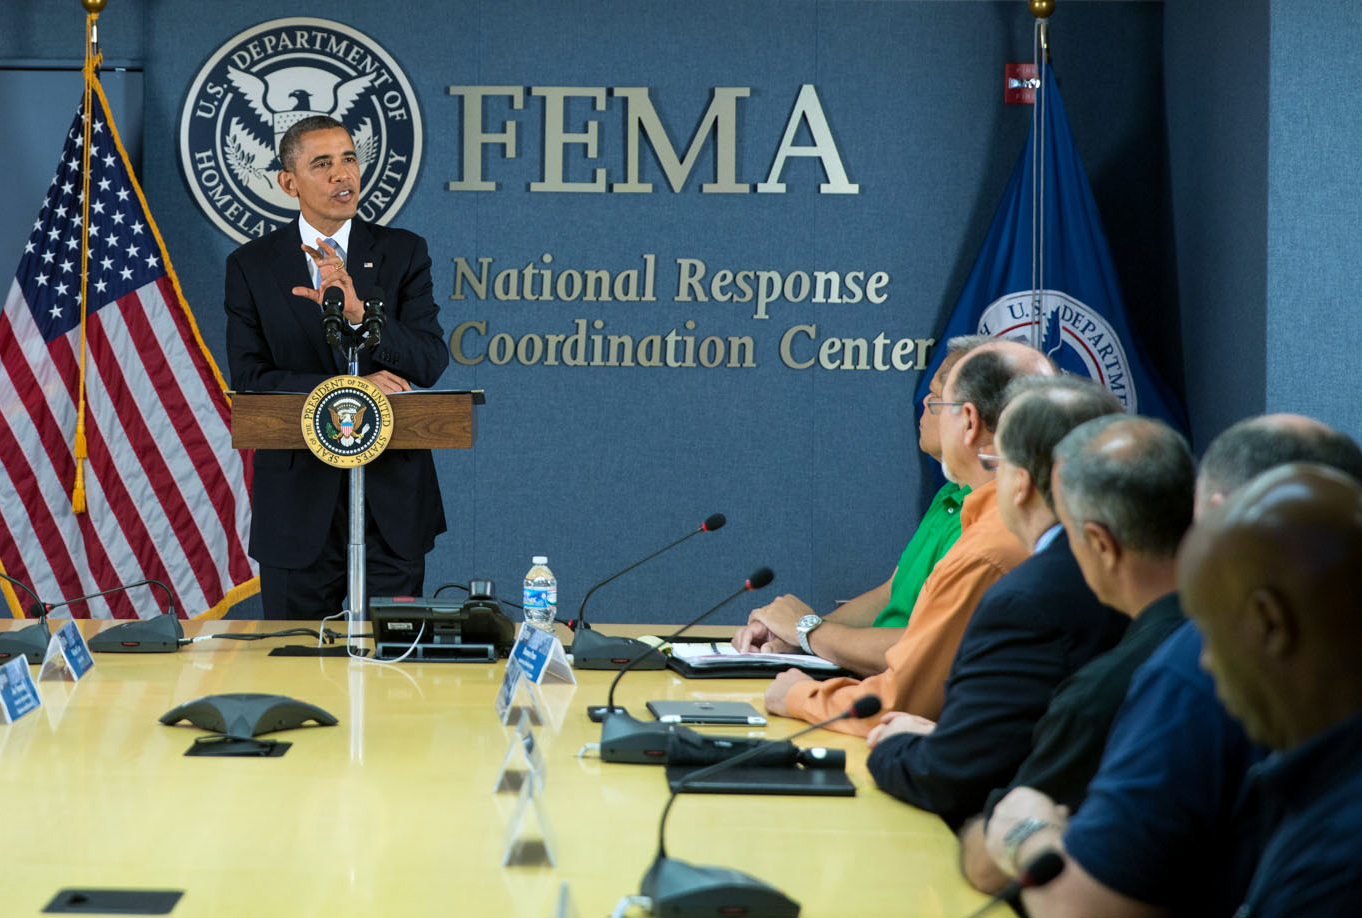 President Obama Meets with FEMA Officials at the National Response Coordinating Center